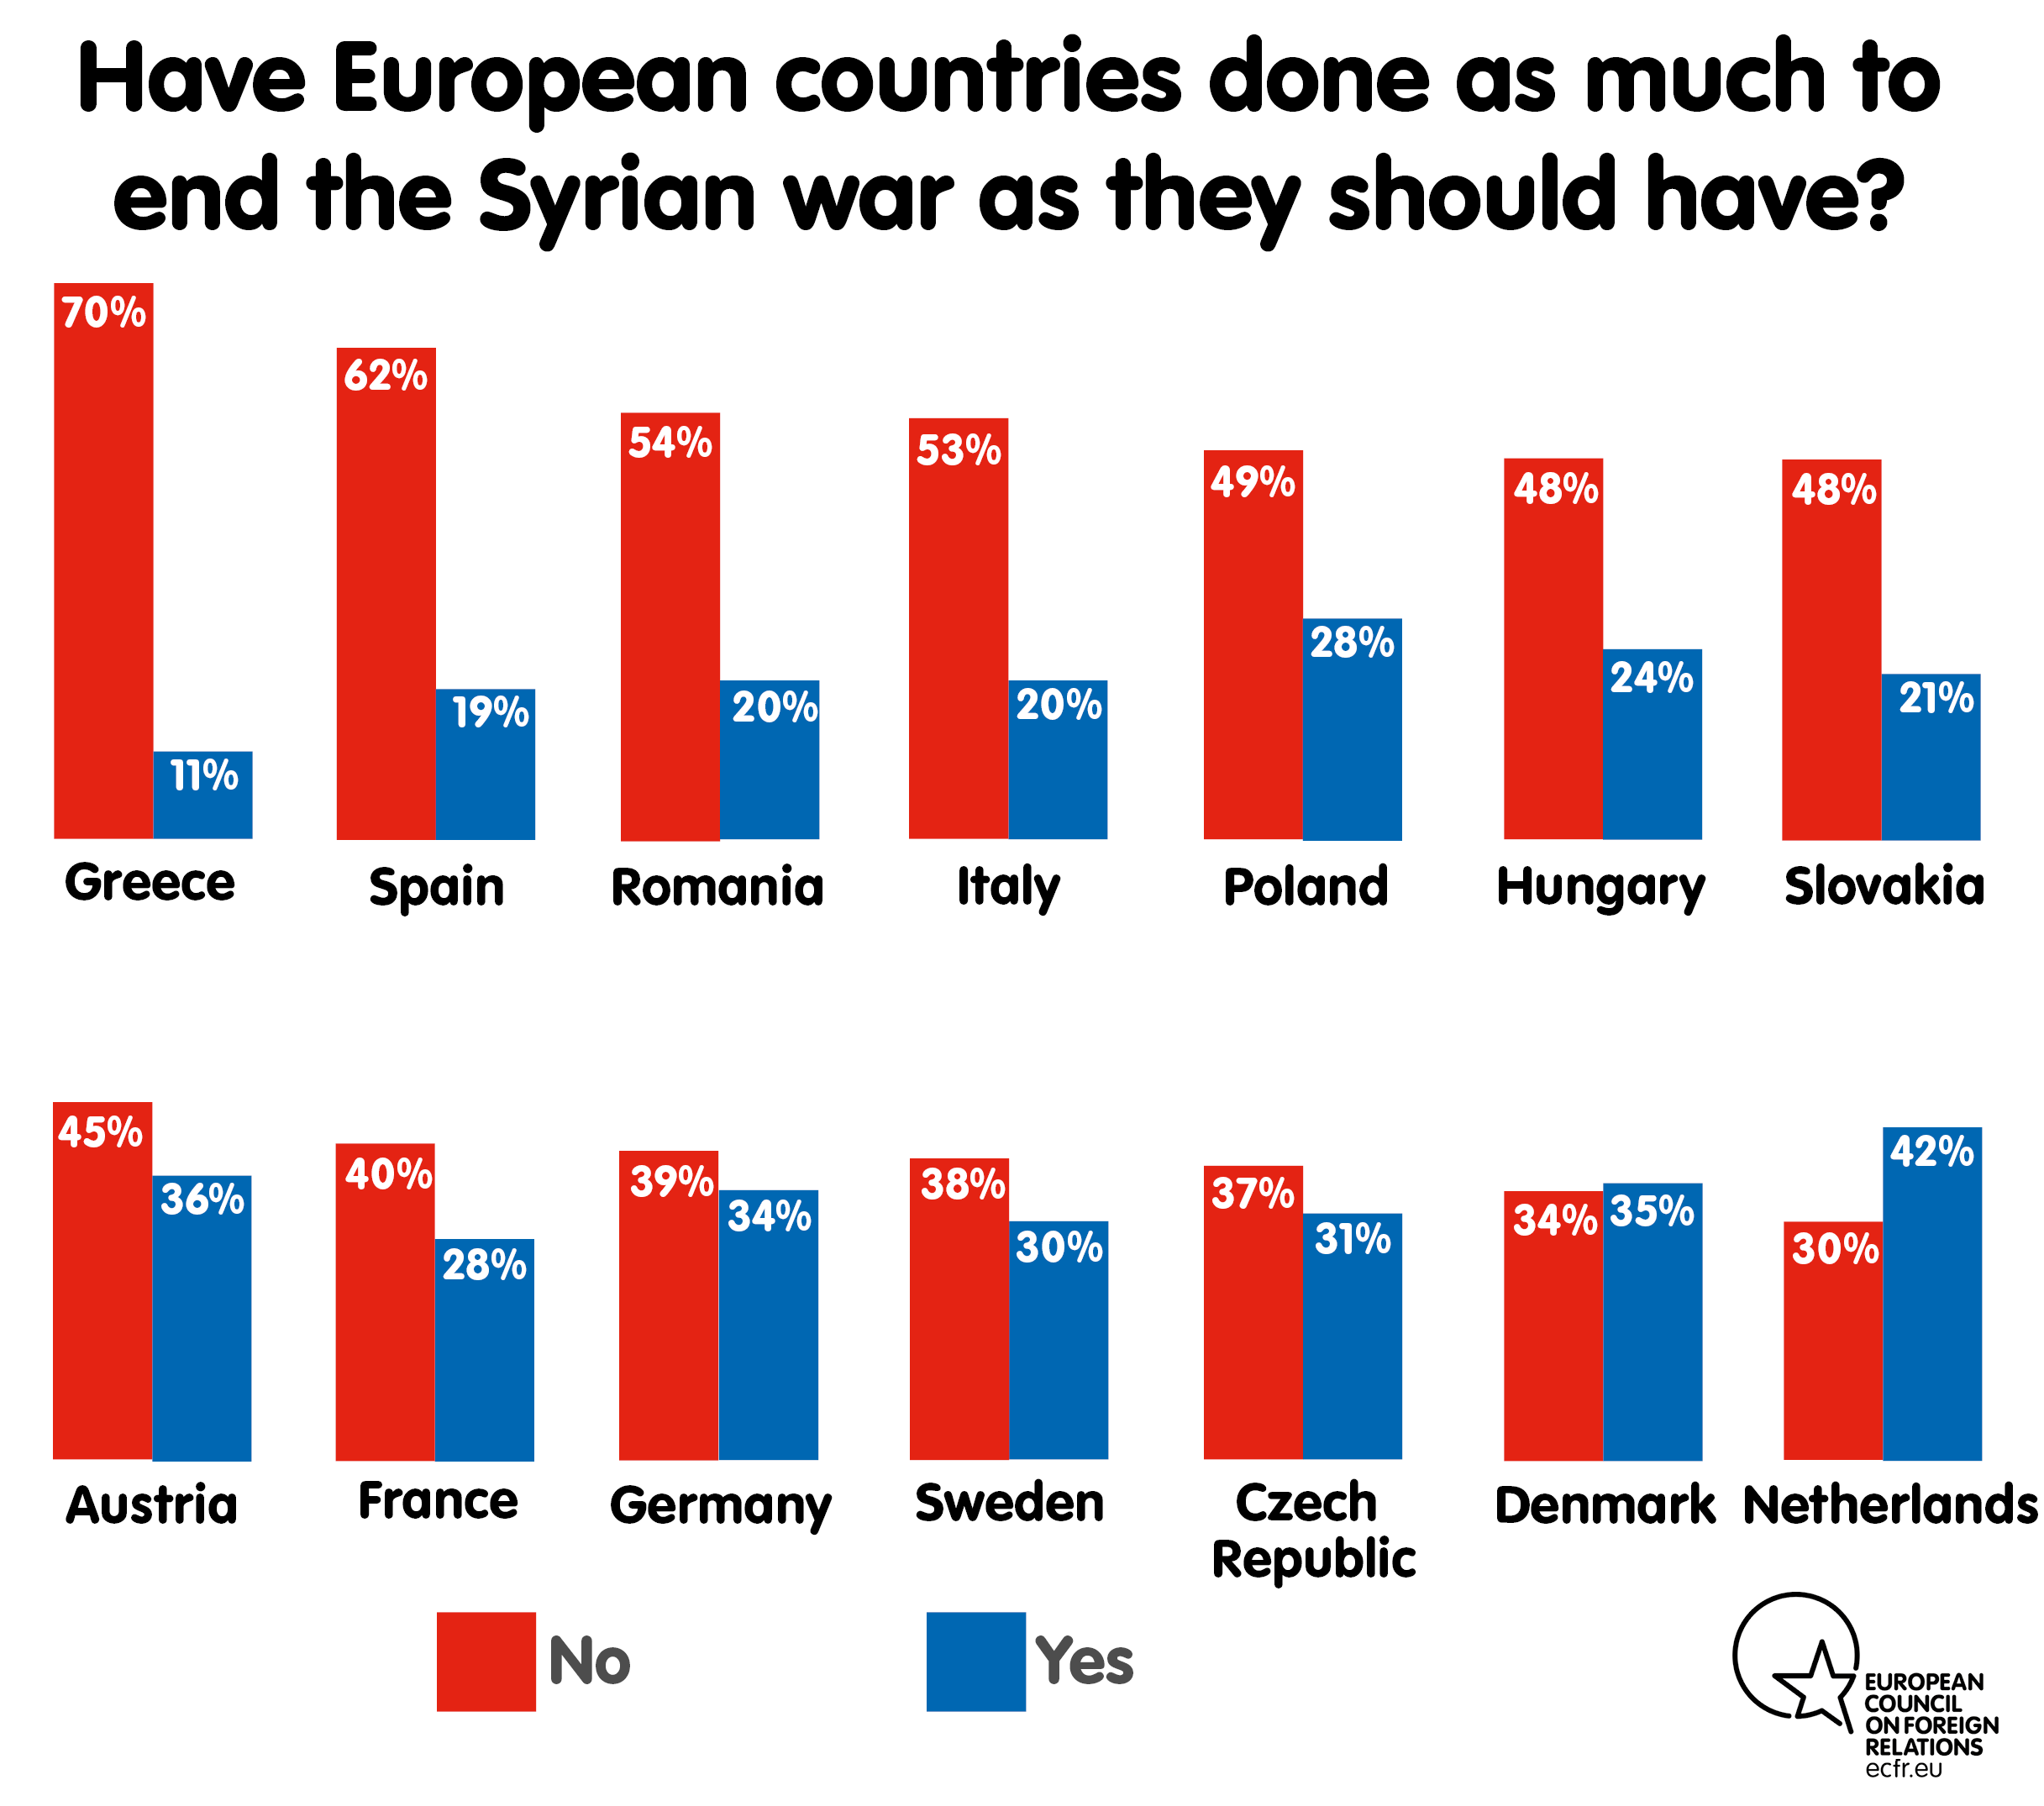 Have European countries done as much to end the Syrian war as they should have?